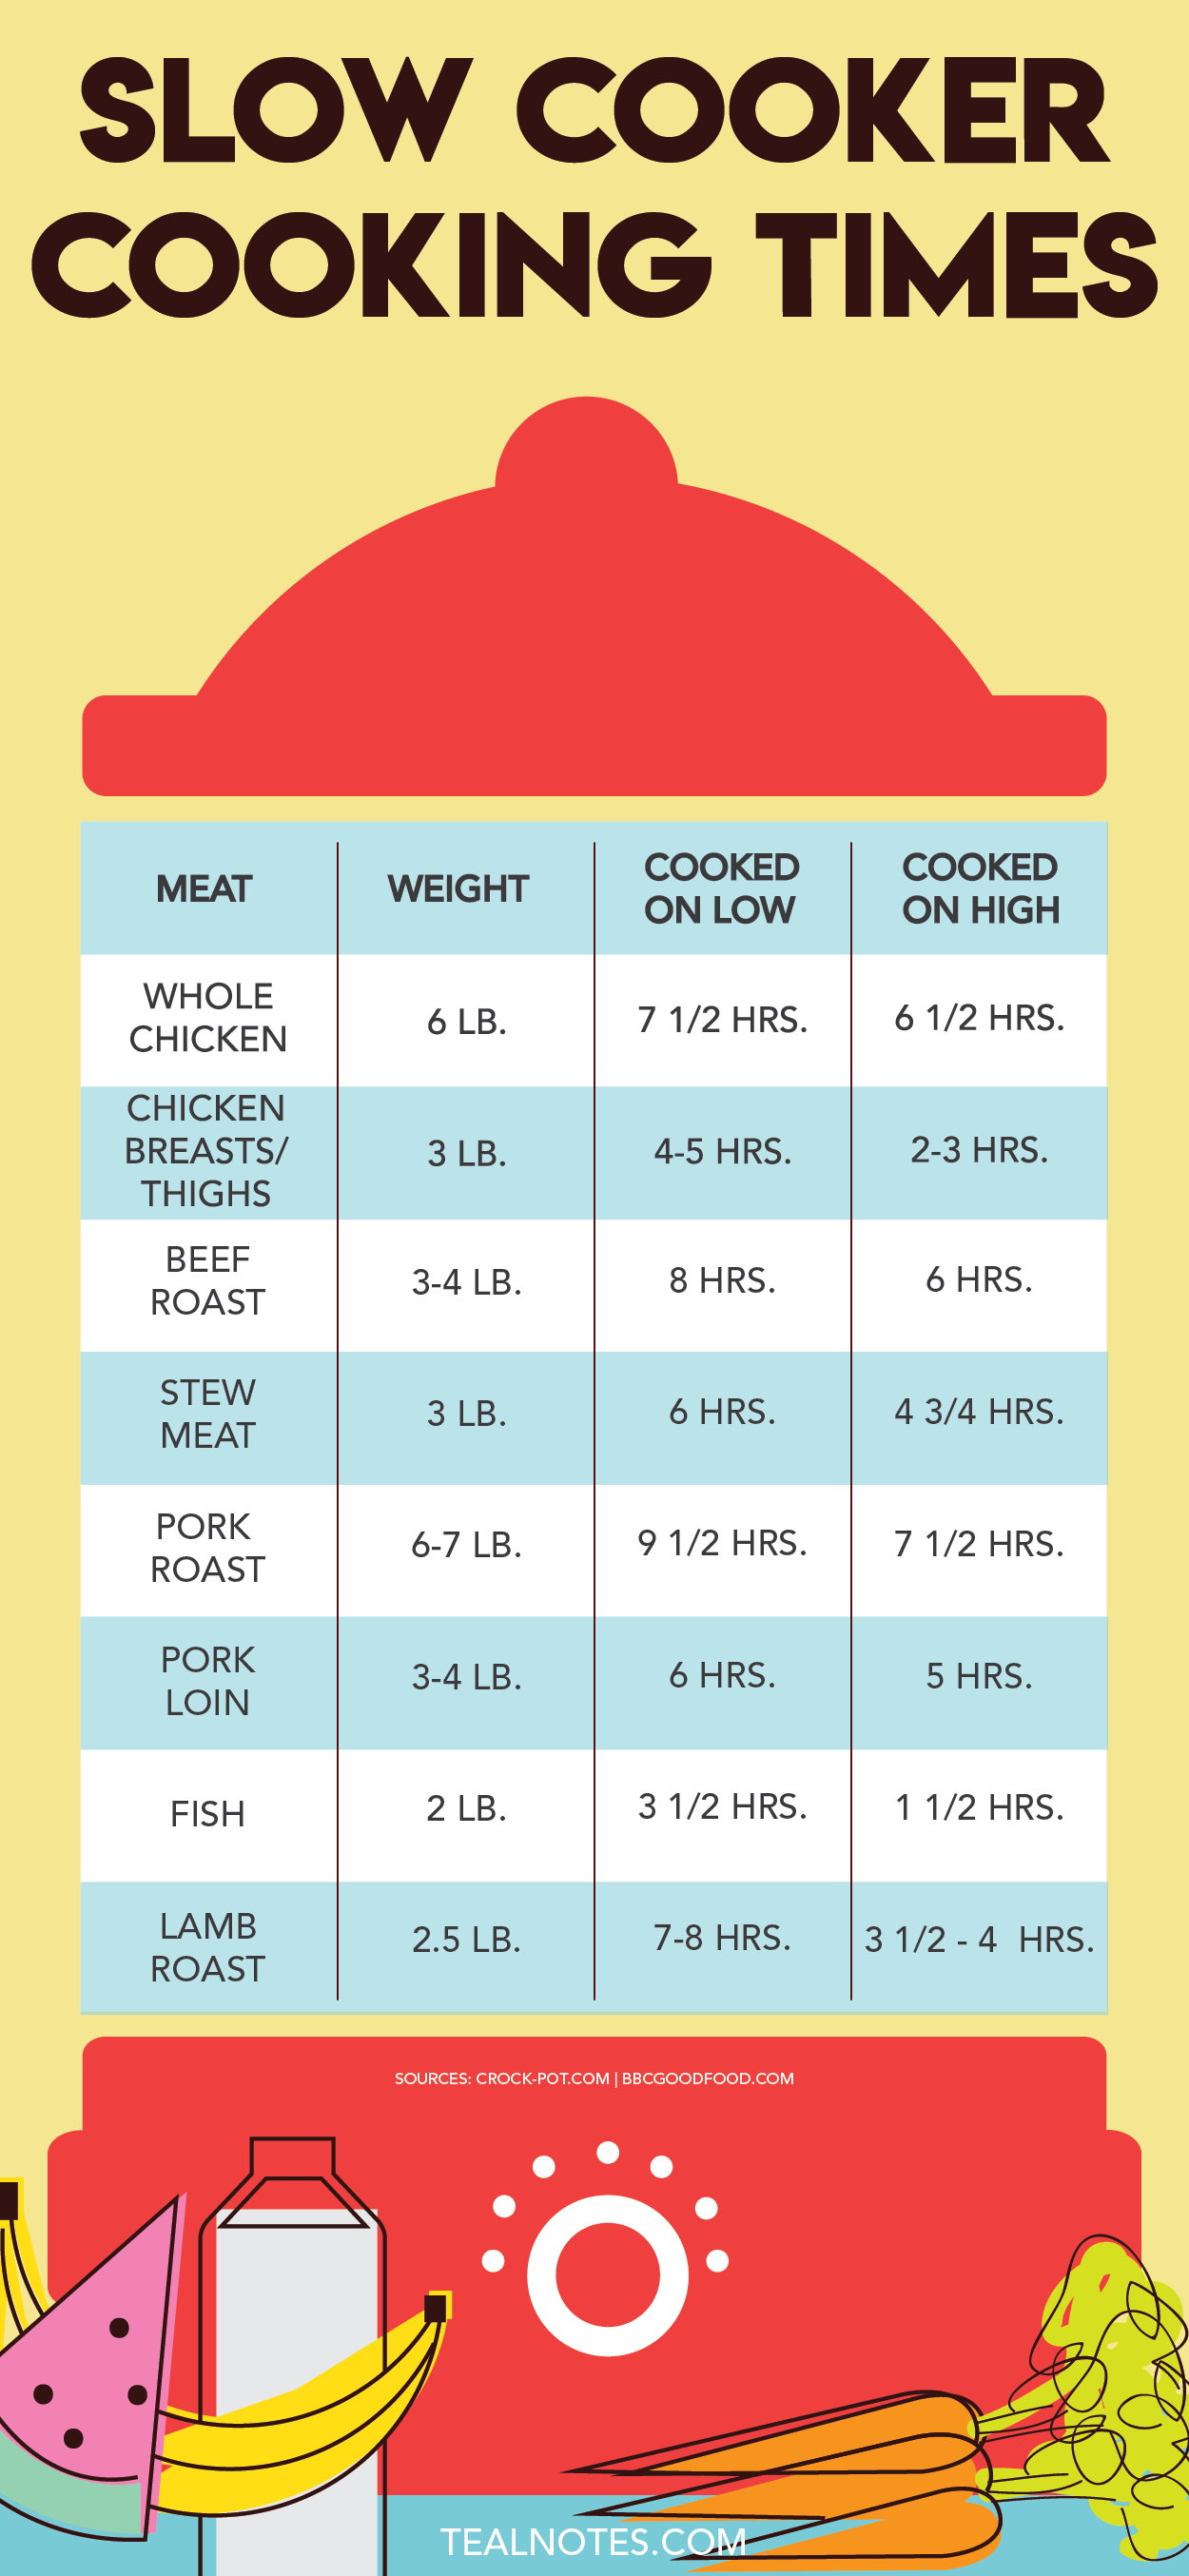 Slow Cooker Cooking Times - A Free Cheat Sheet For Your Crock Pot